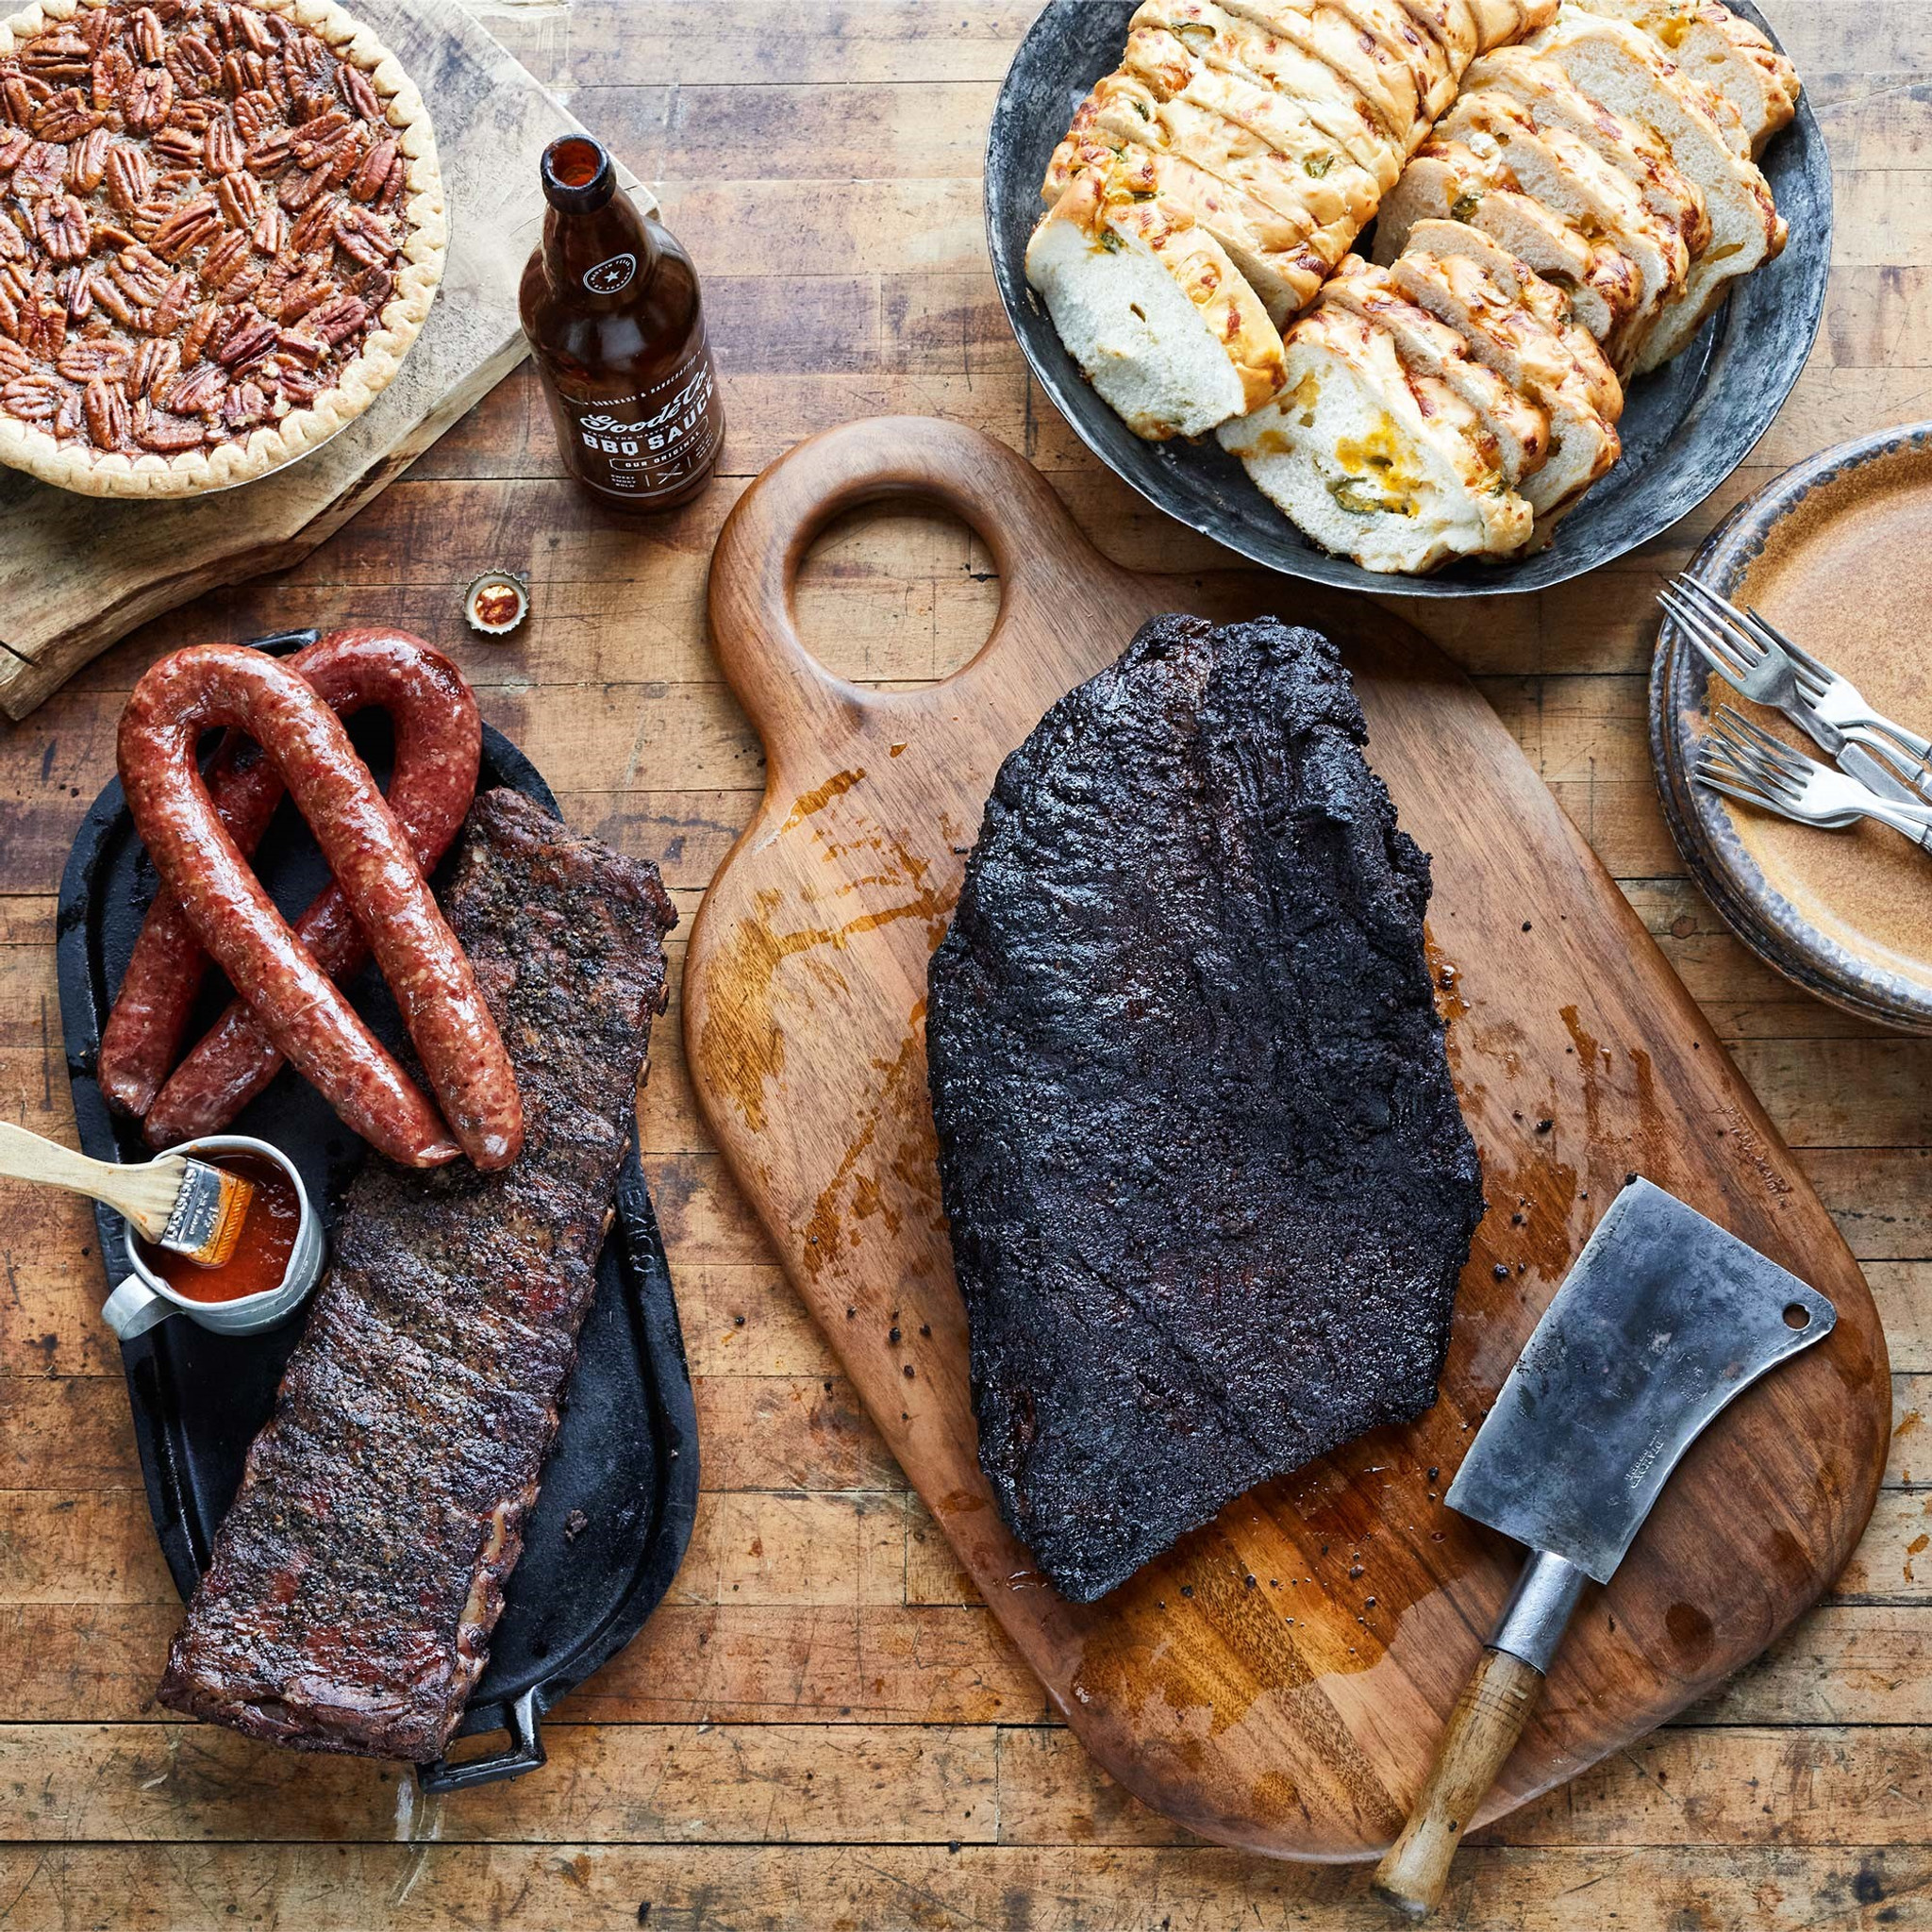 Goode Co's The Independence meal bundle, consisting of whole smoked brisket, rack of pork ribs, link of Czech sausage, link of jalapeño pork sausage, bottle Goode's Original BBQ sauce, and 2 loaves of jalapeño cheese bread.